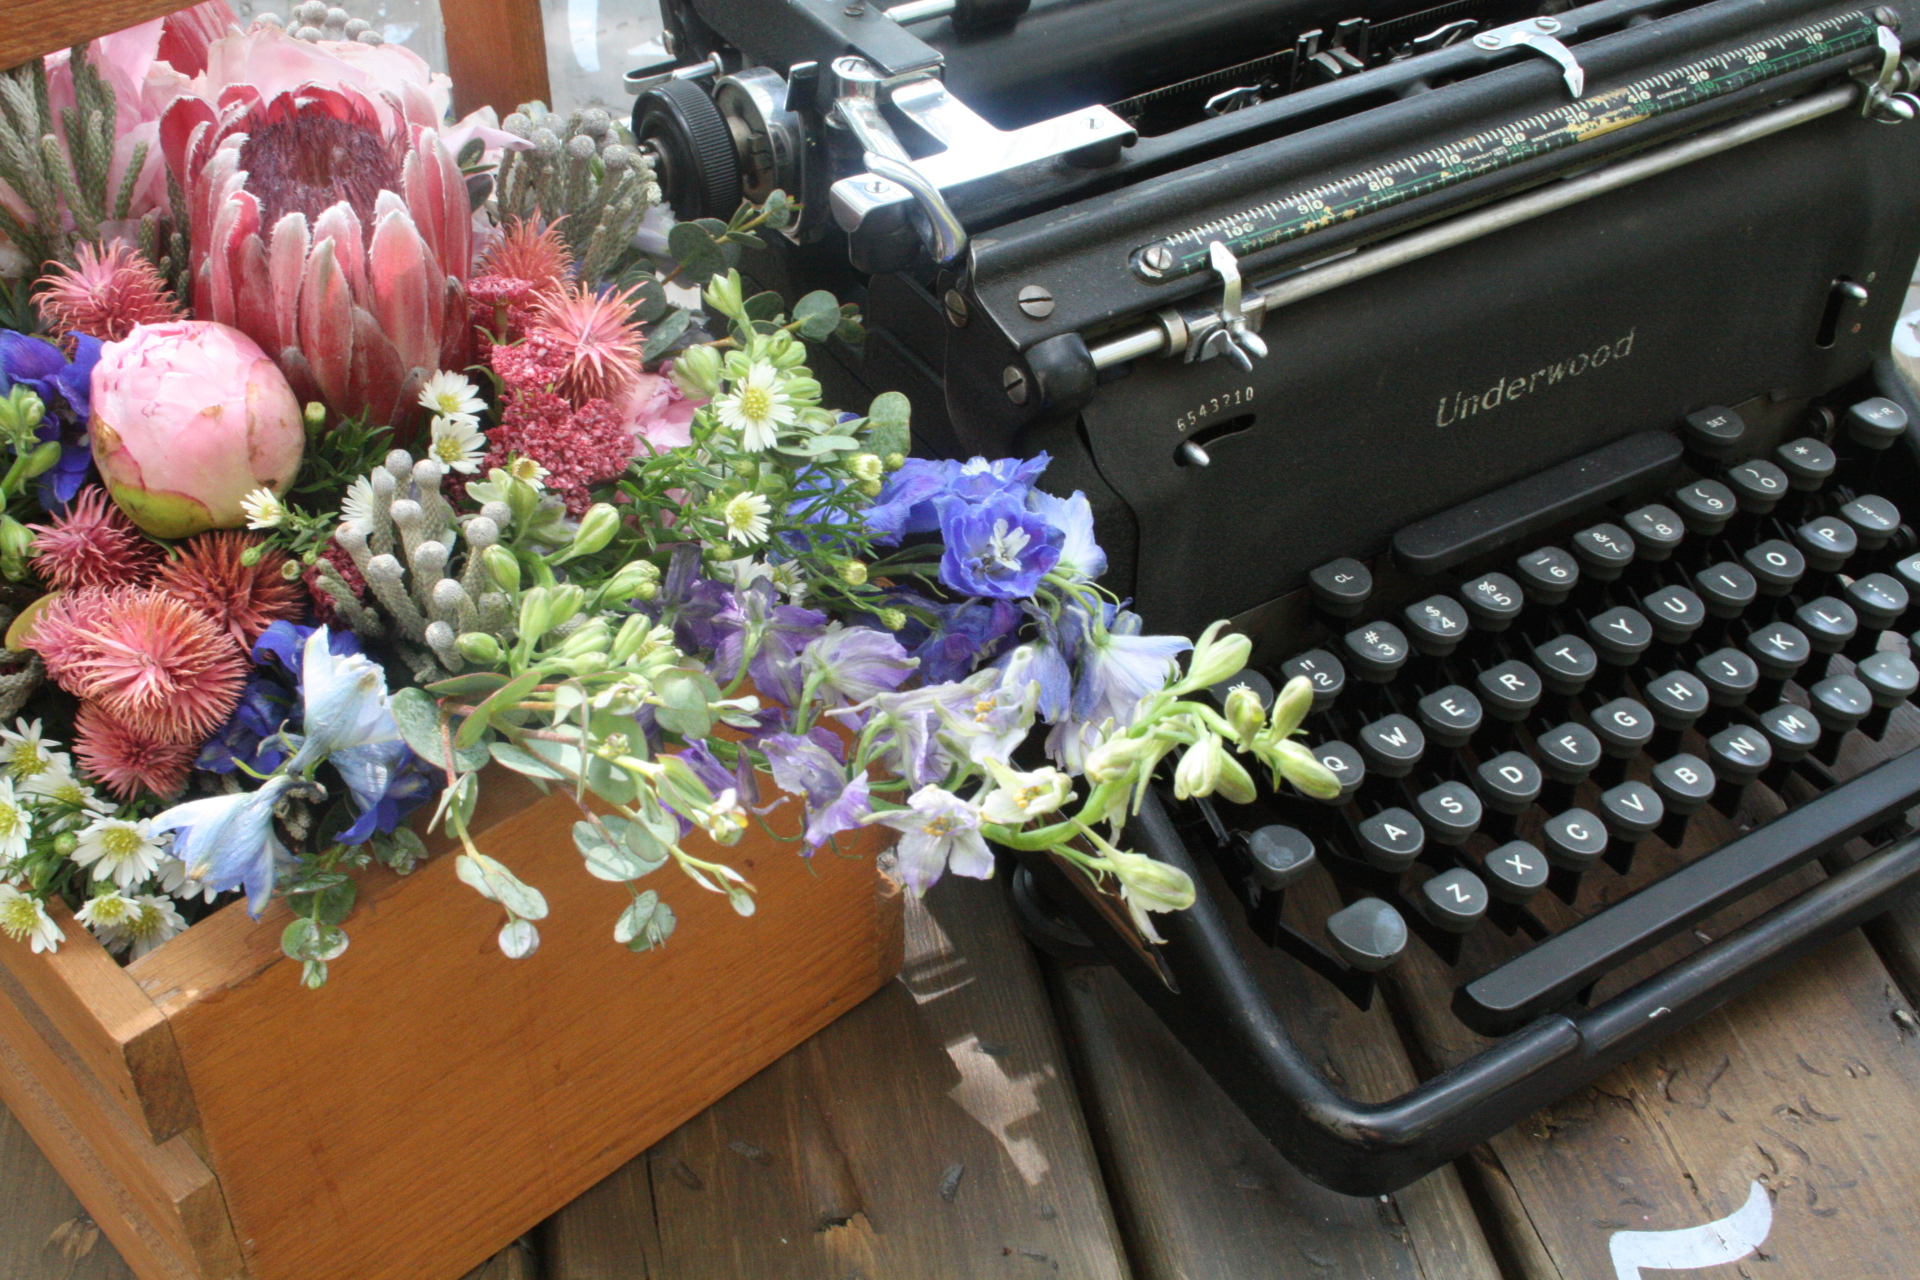 Antique Typewriter with flowers